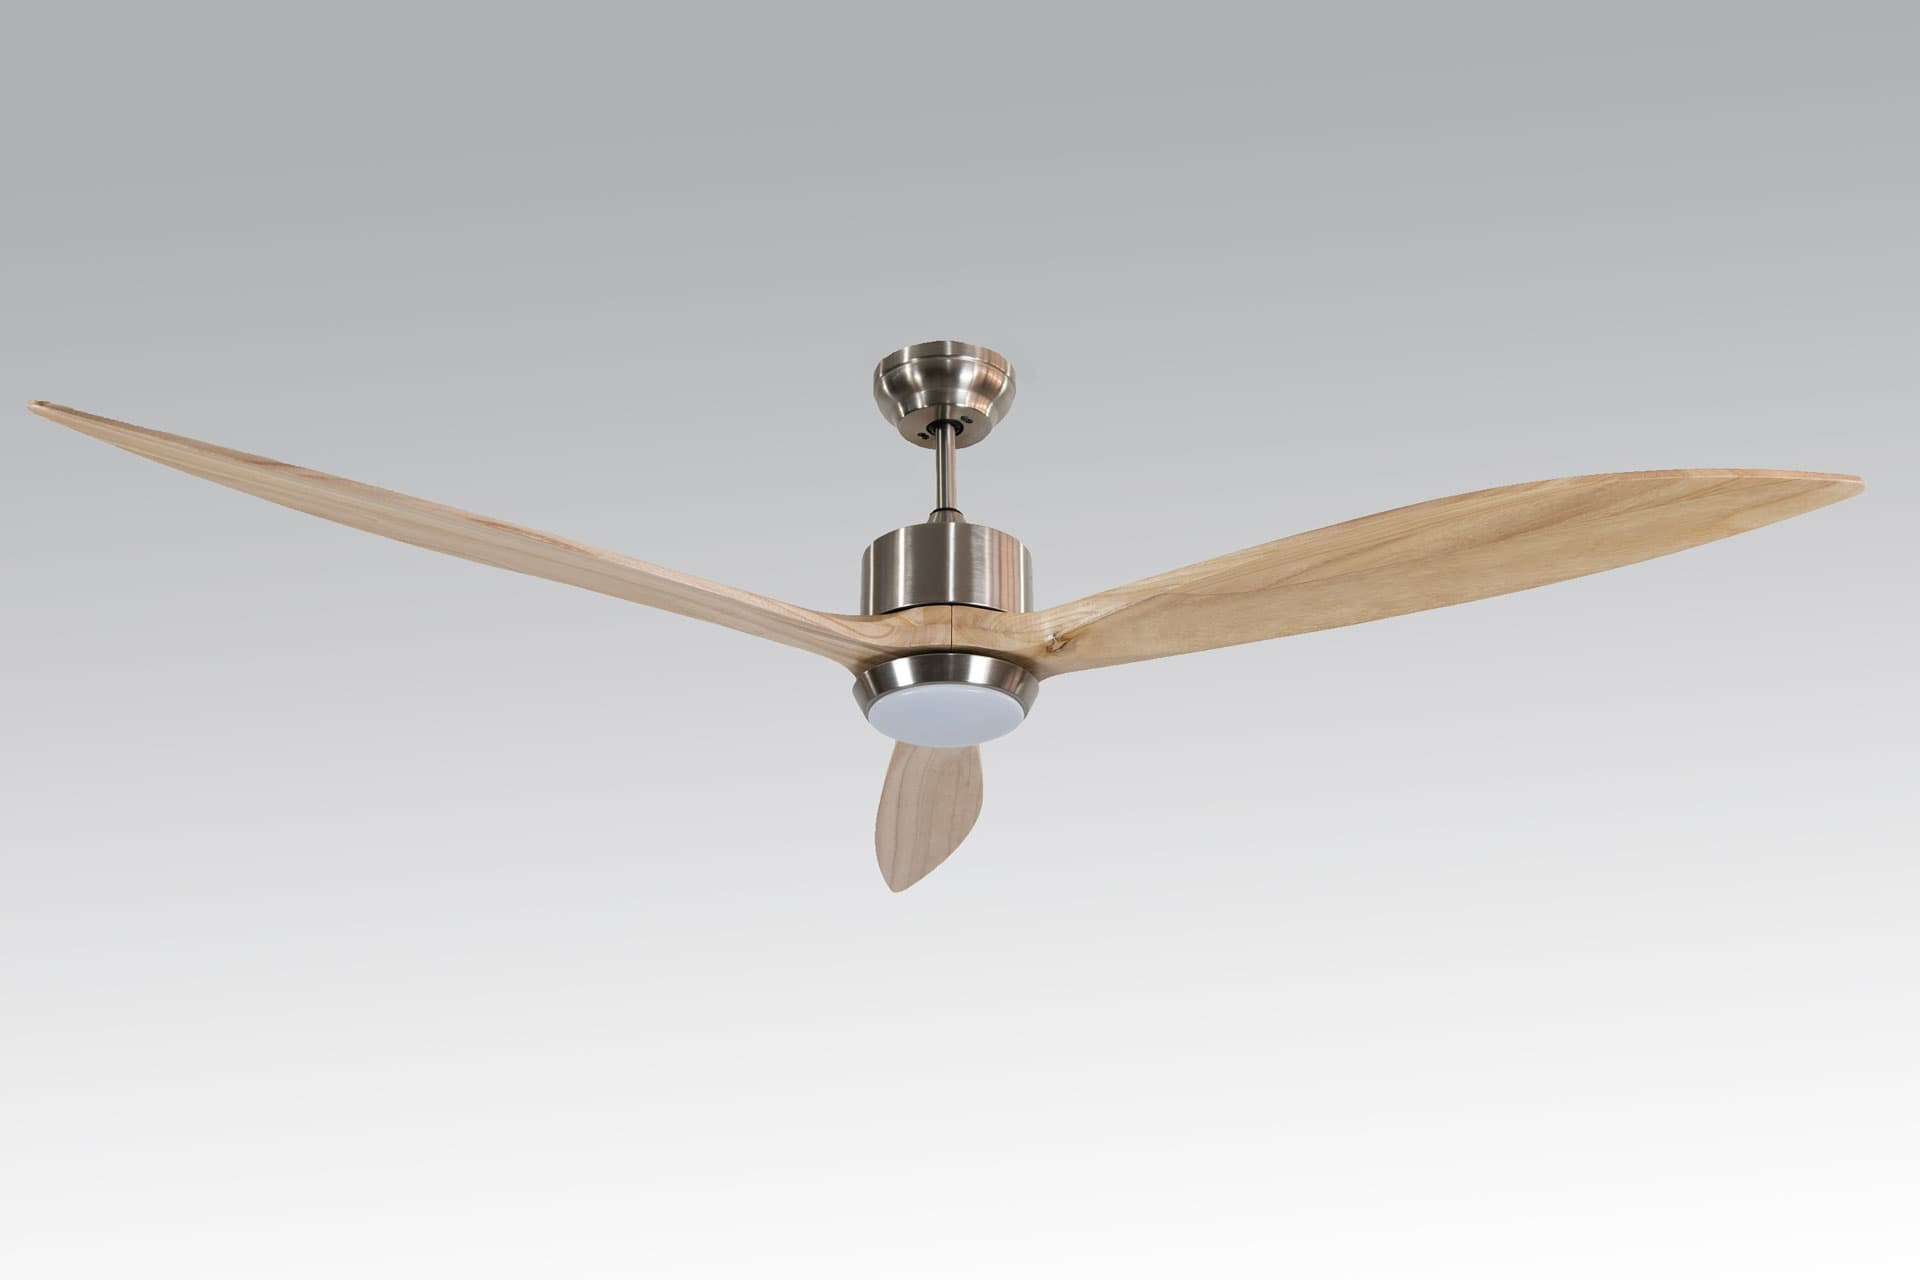 Alsanfan – Profan Daisy - Light Brown, With Light Ceiling Fan